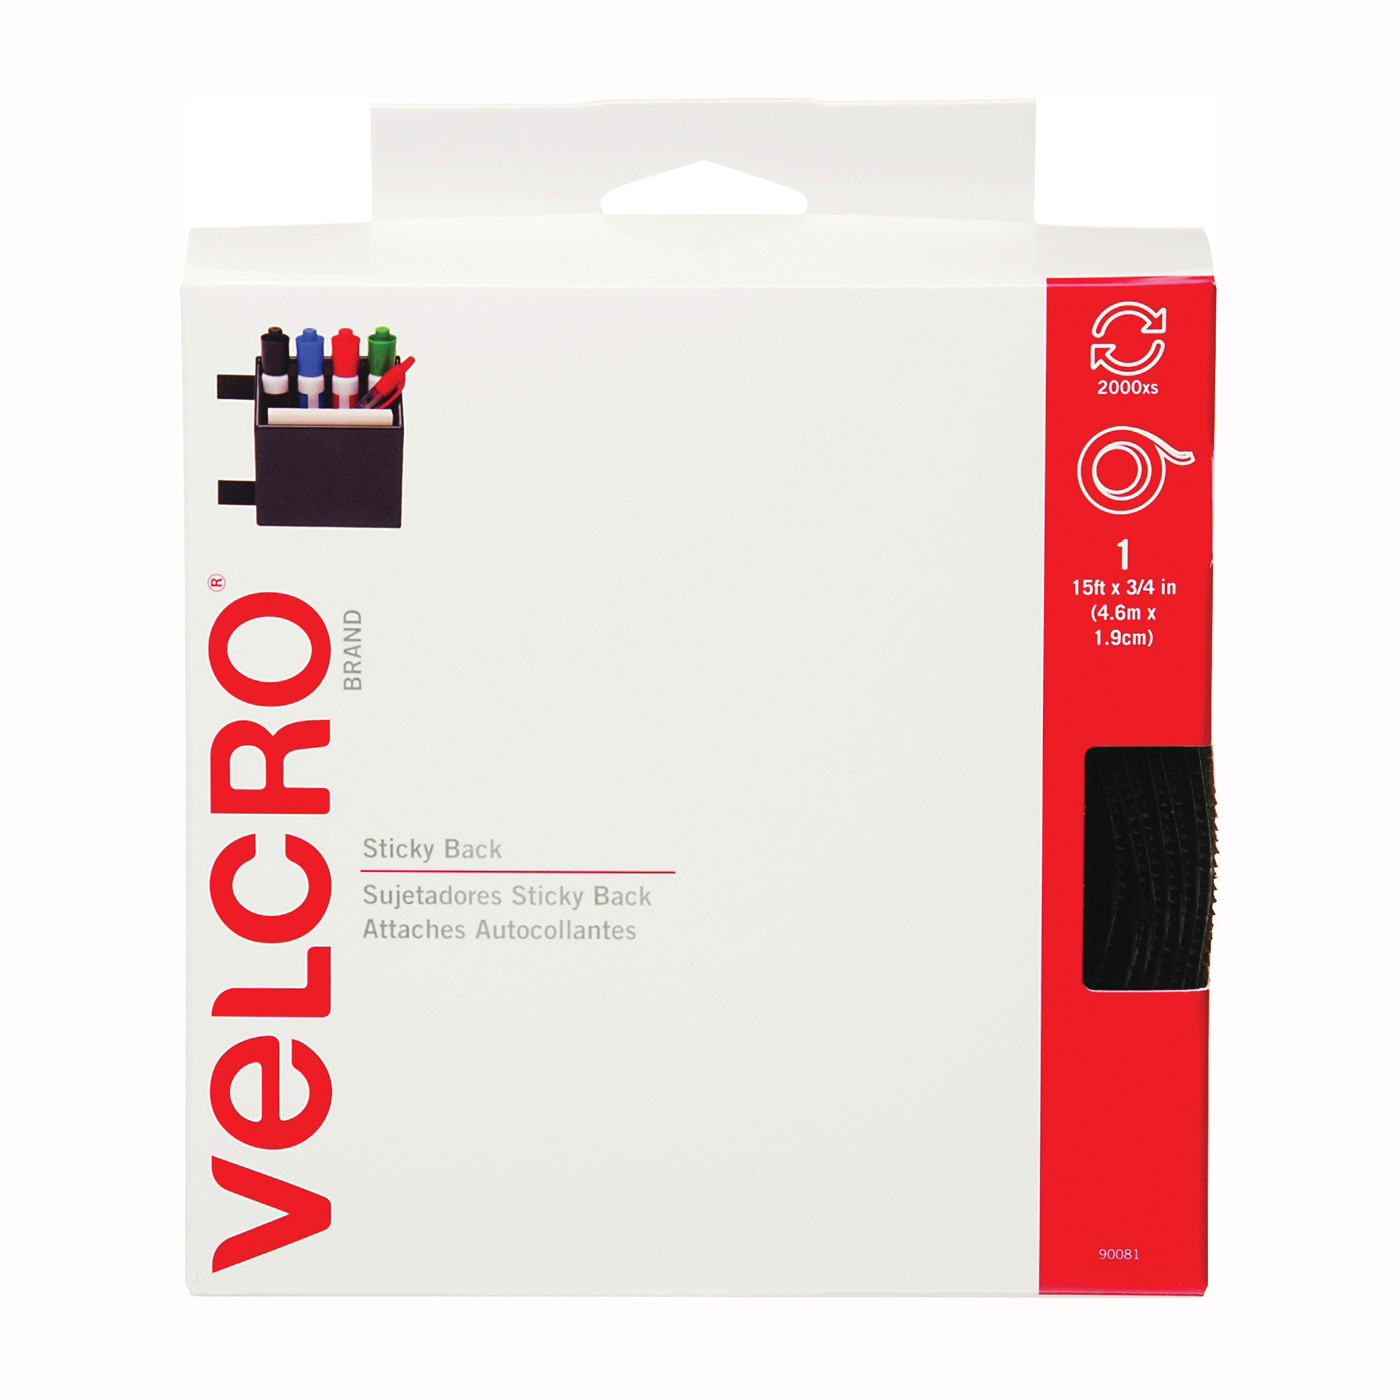 Picture of VELCRO Brand 90081 Fastener, 3/4 in W, 15 ft L, Black